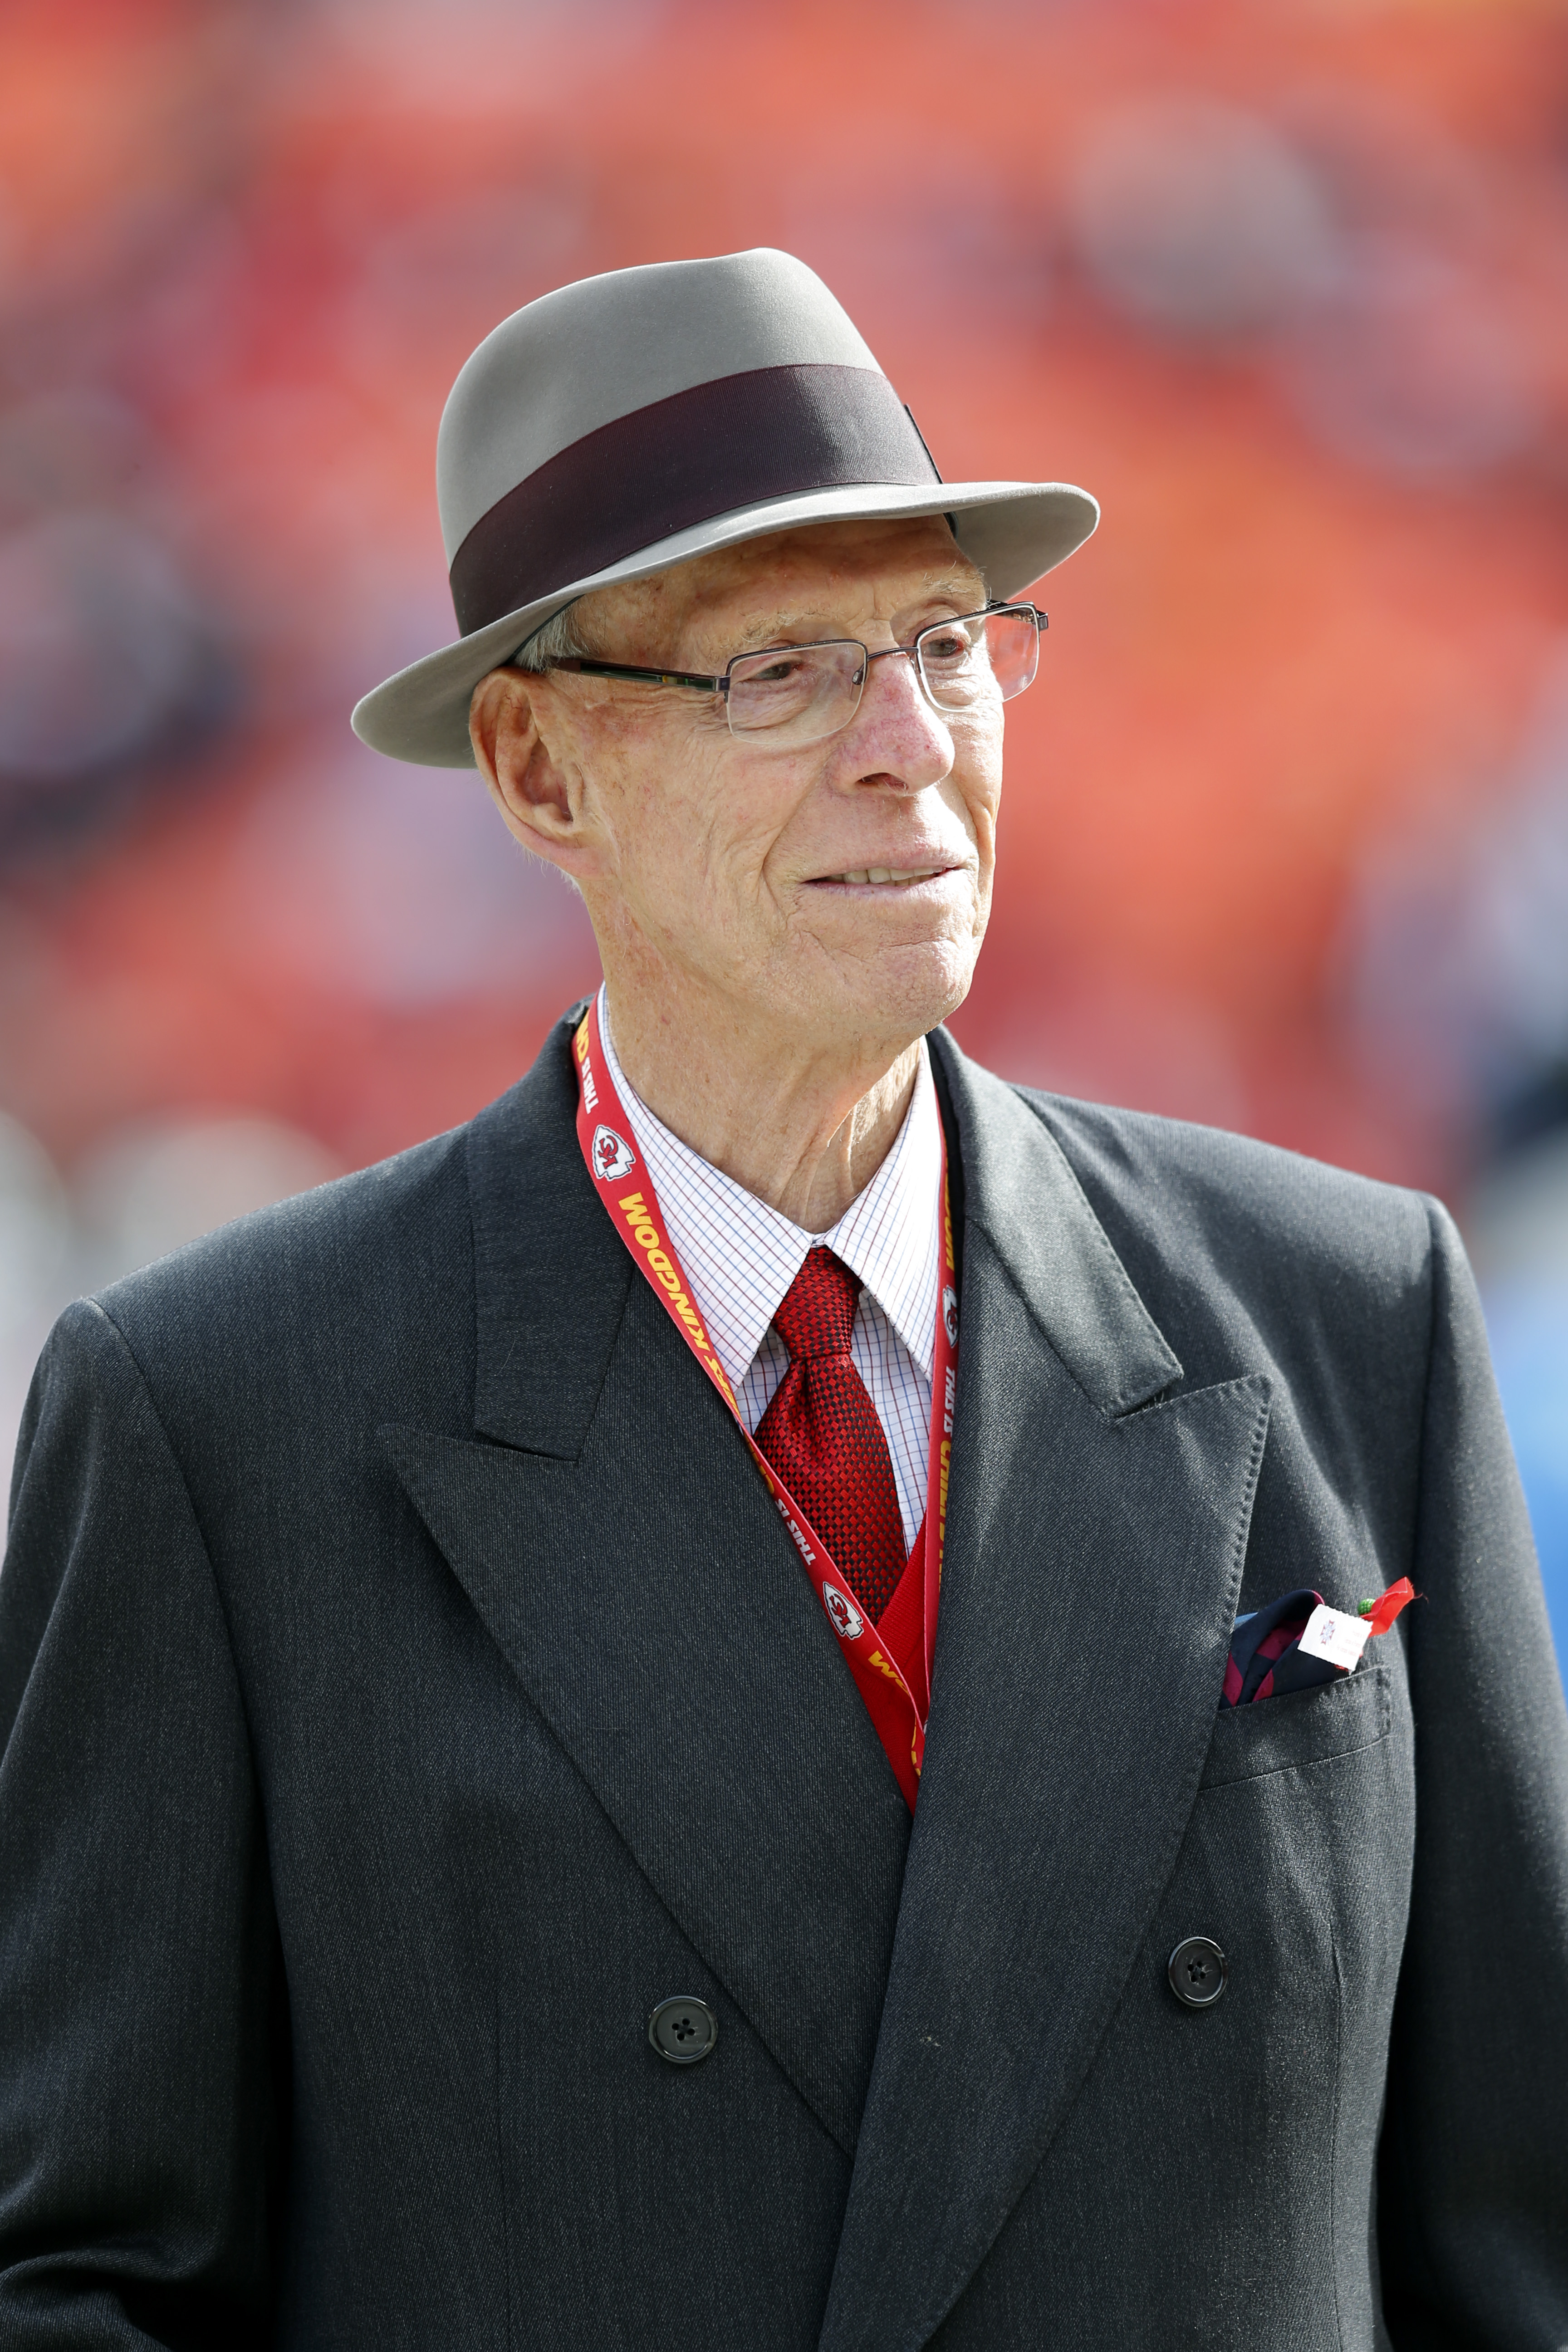 Former Kansas City Chiefs general manager Jack Steadman prior to an NFL football game against the San Diego Chargers Sunday, Nov. 24, 2013, in Kansas City, Mo. (AP Photo/Ed Zurga)